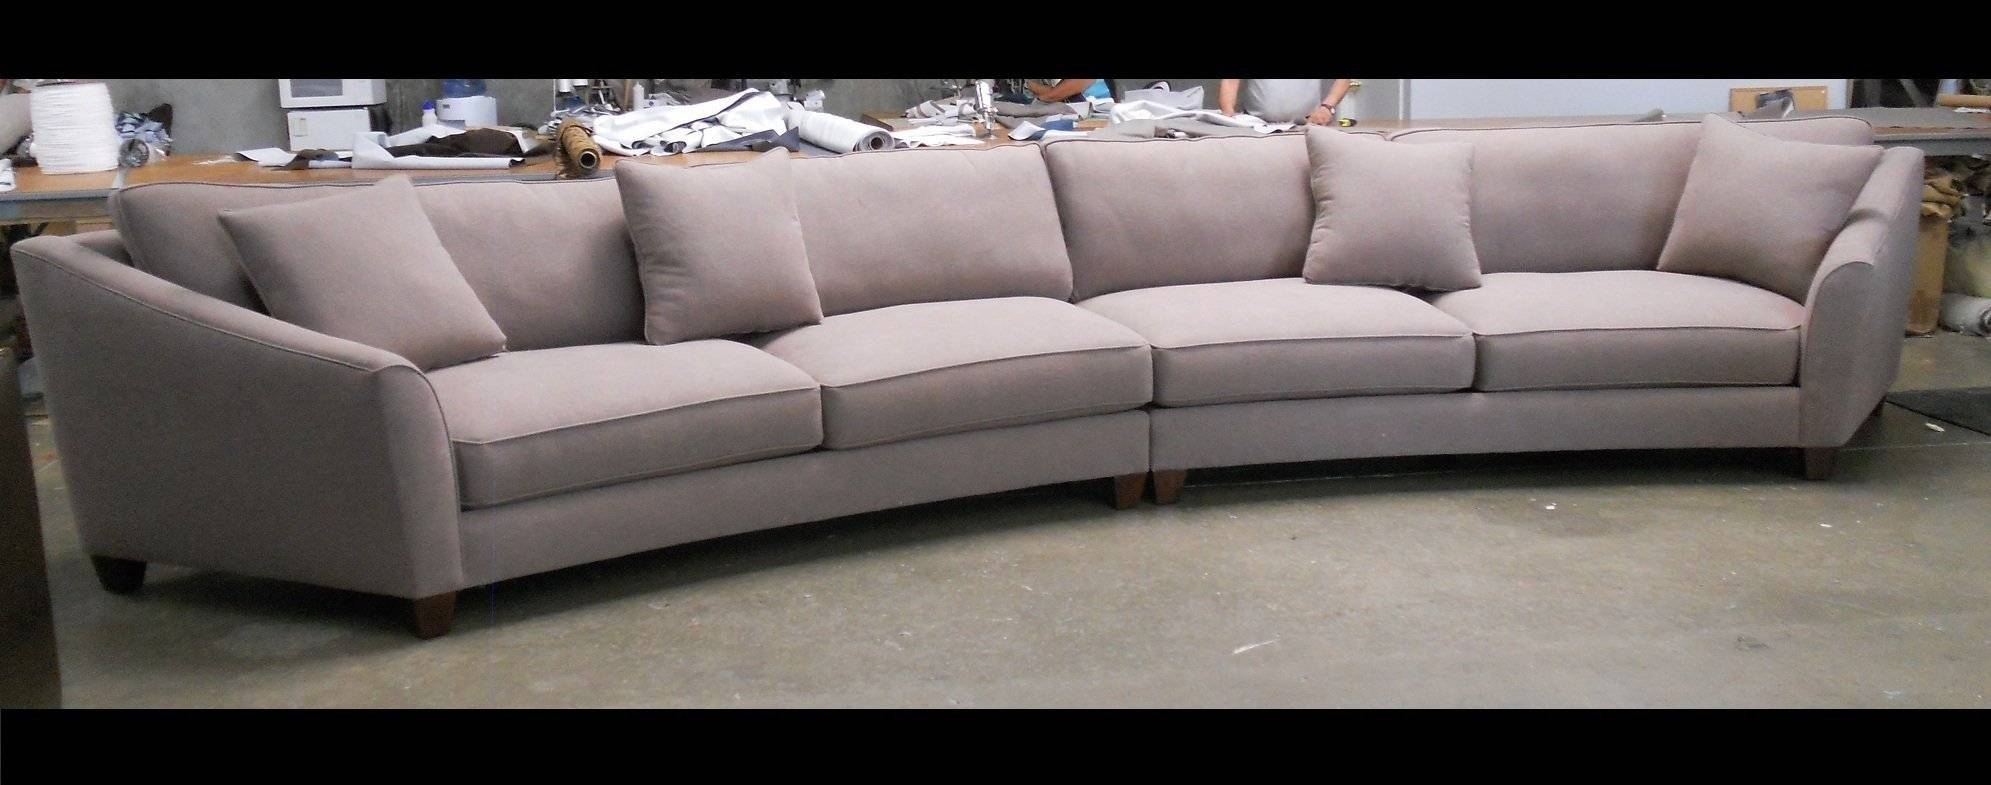 Curved Sectional Sofa Set - Rich Comfortable Upholstered Fabric for Round Sectional Sofa (Image 3 of 30)